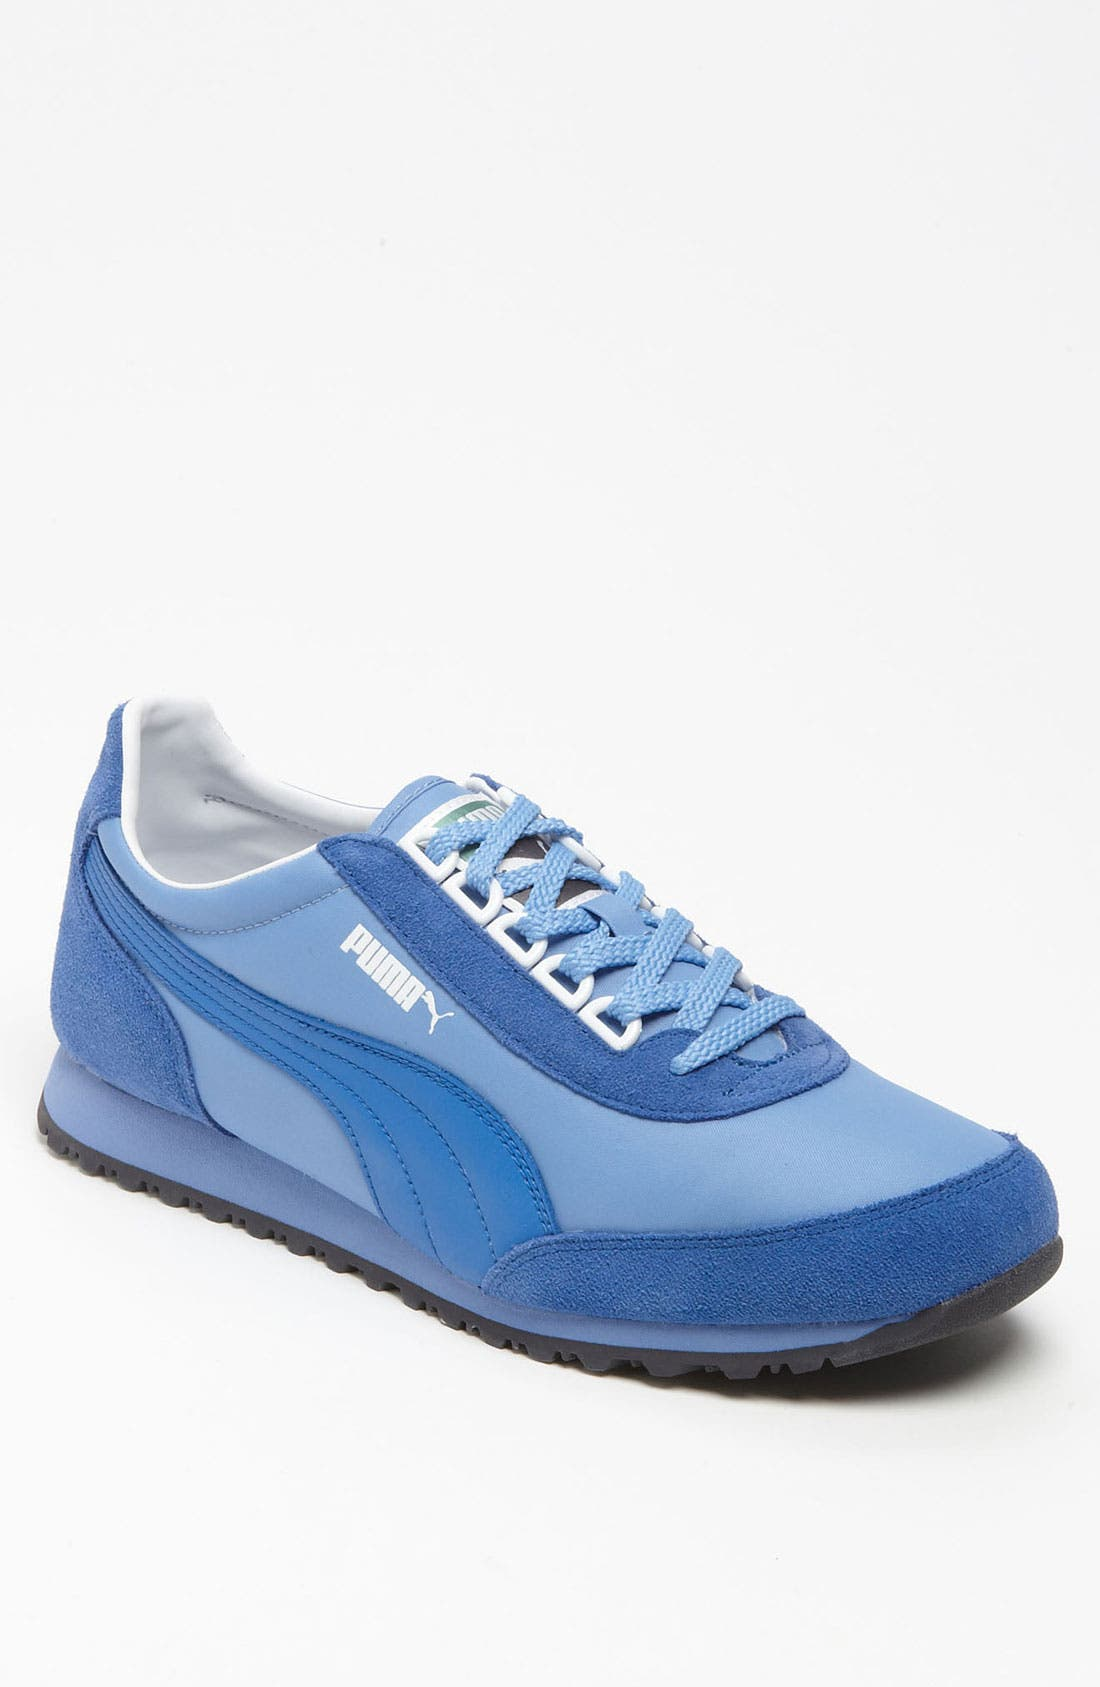 Main Image - PUMA 'Zoditrack82' Sneaker (Men)